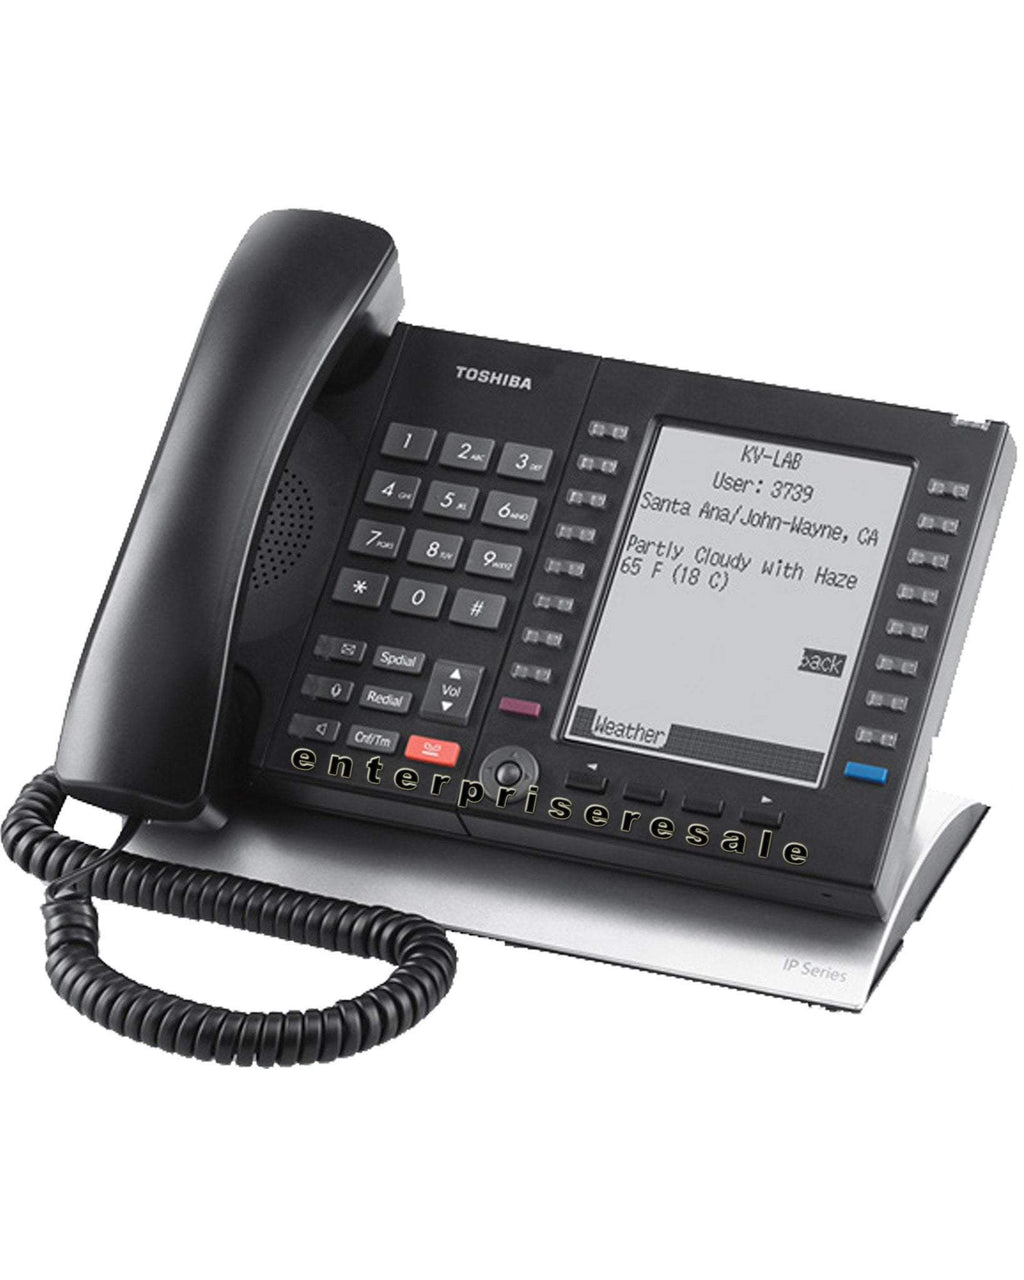 Toshiba IP Phone Toshiba (IP5131-SDL) IP Phone 20 Button Speaker Display Refurbished